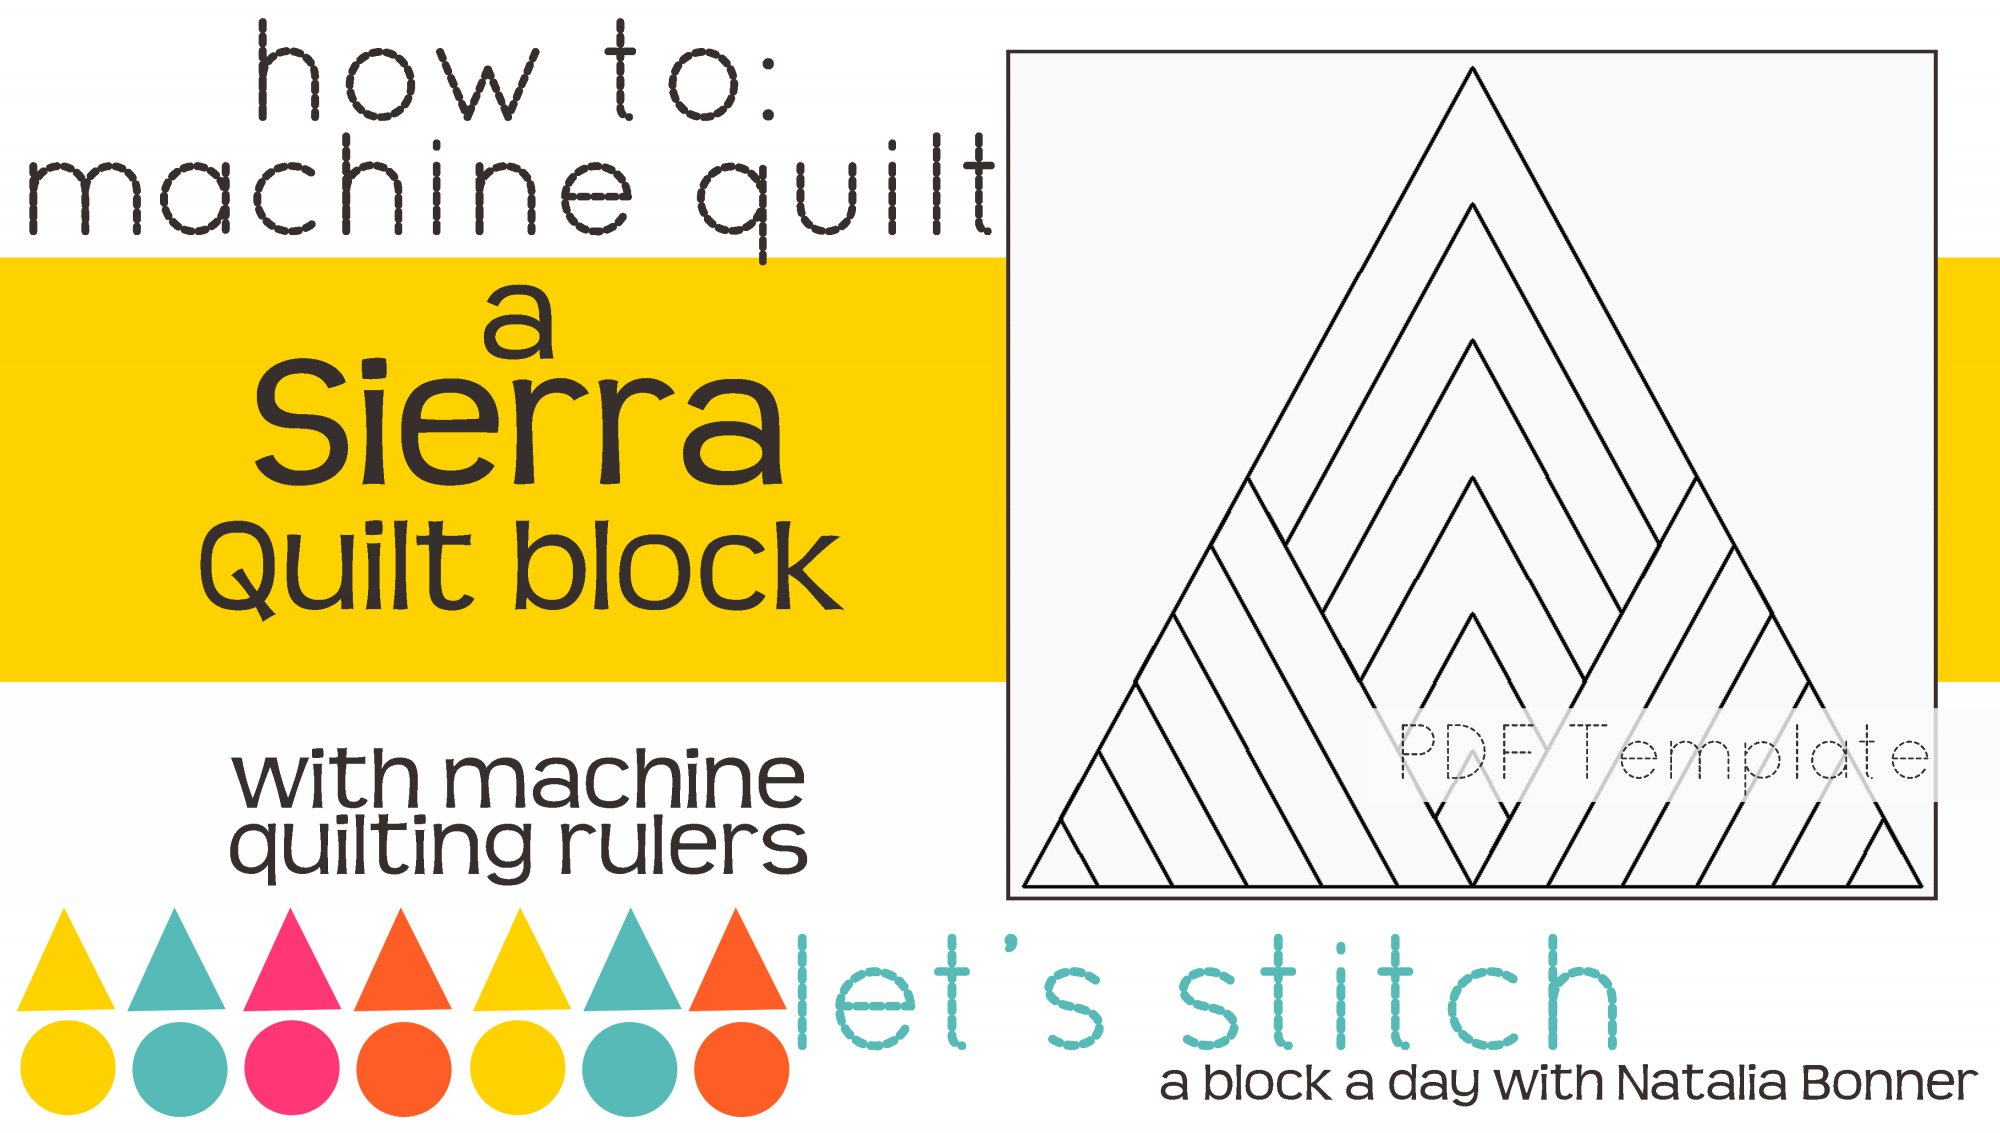 Let's Stitch - A Block a Day With Natalia Bonner - PDF - Sierra